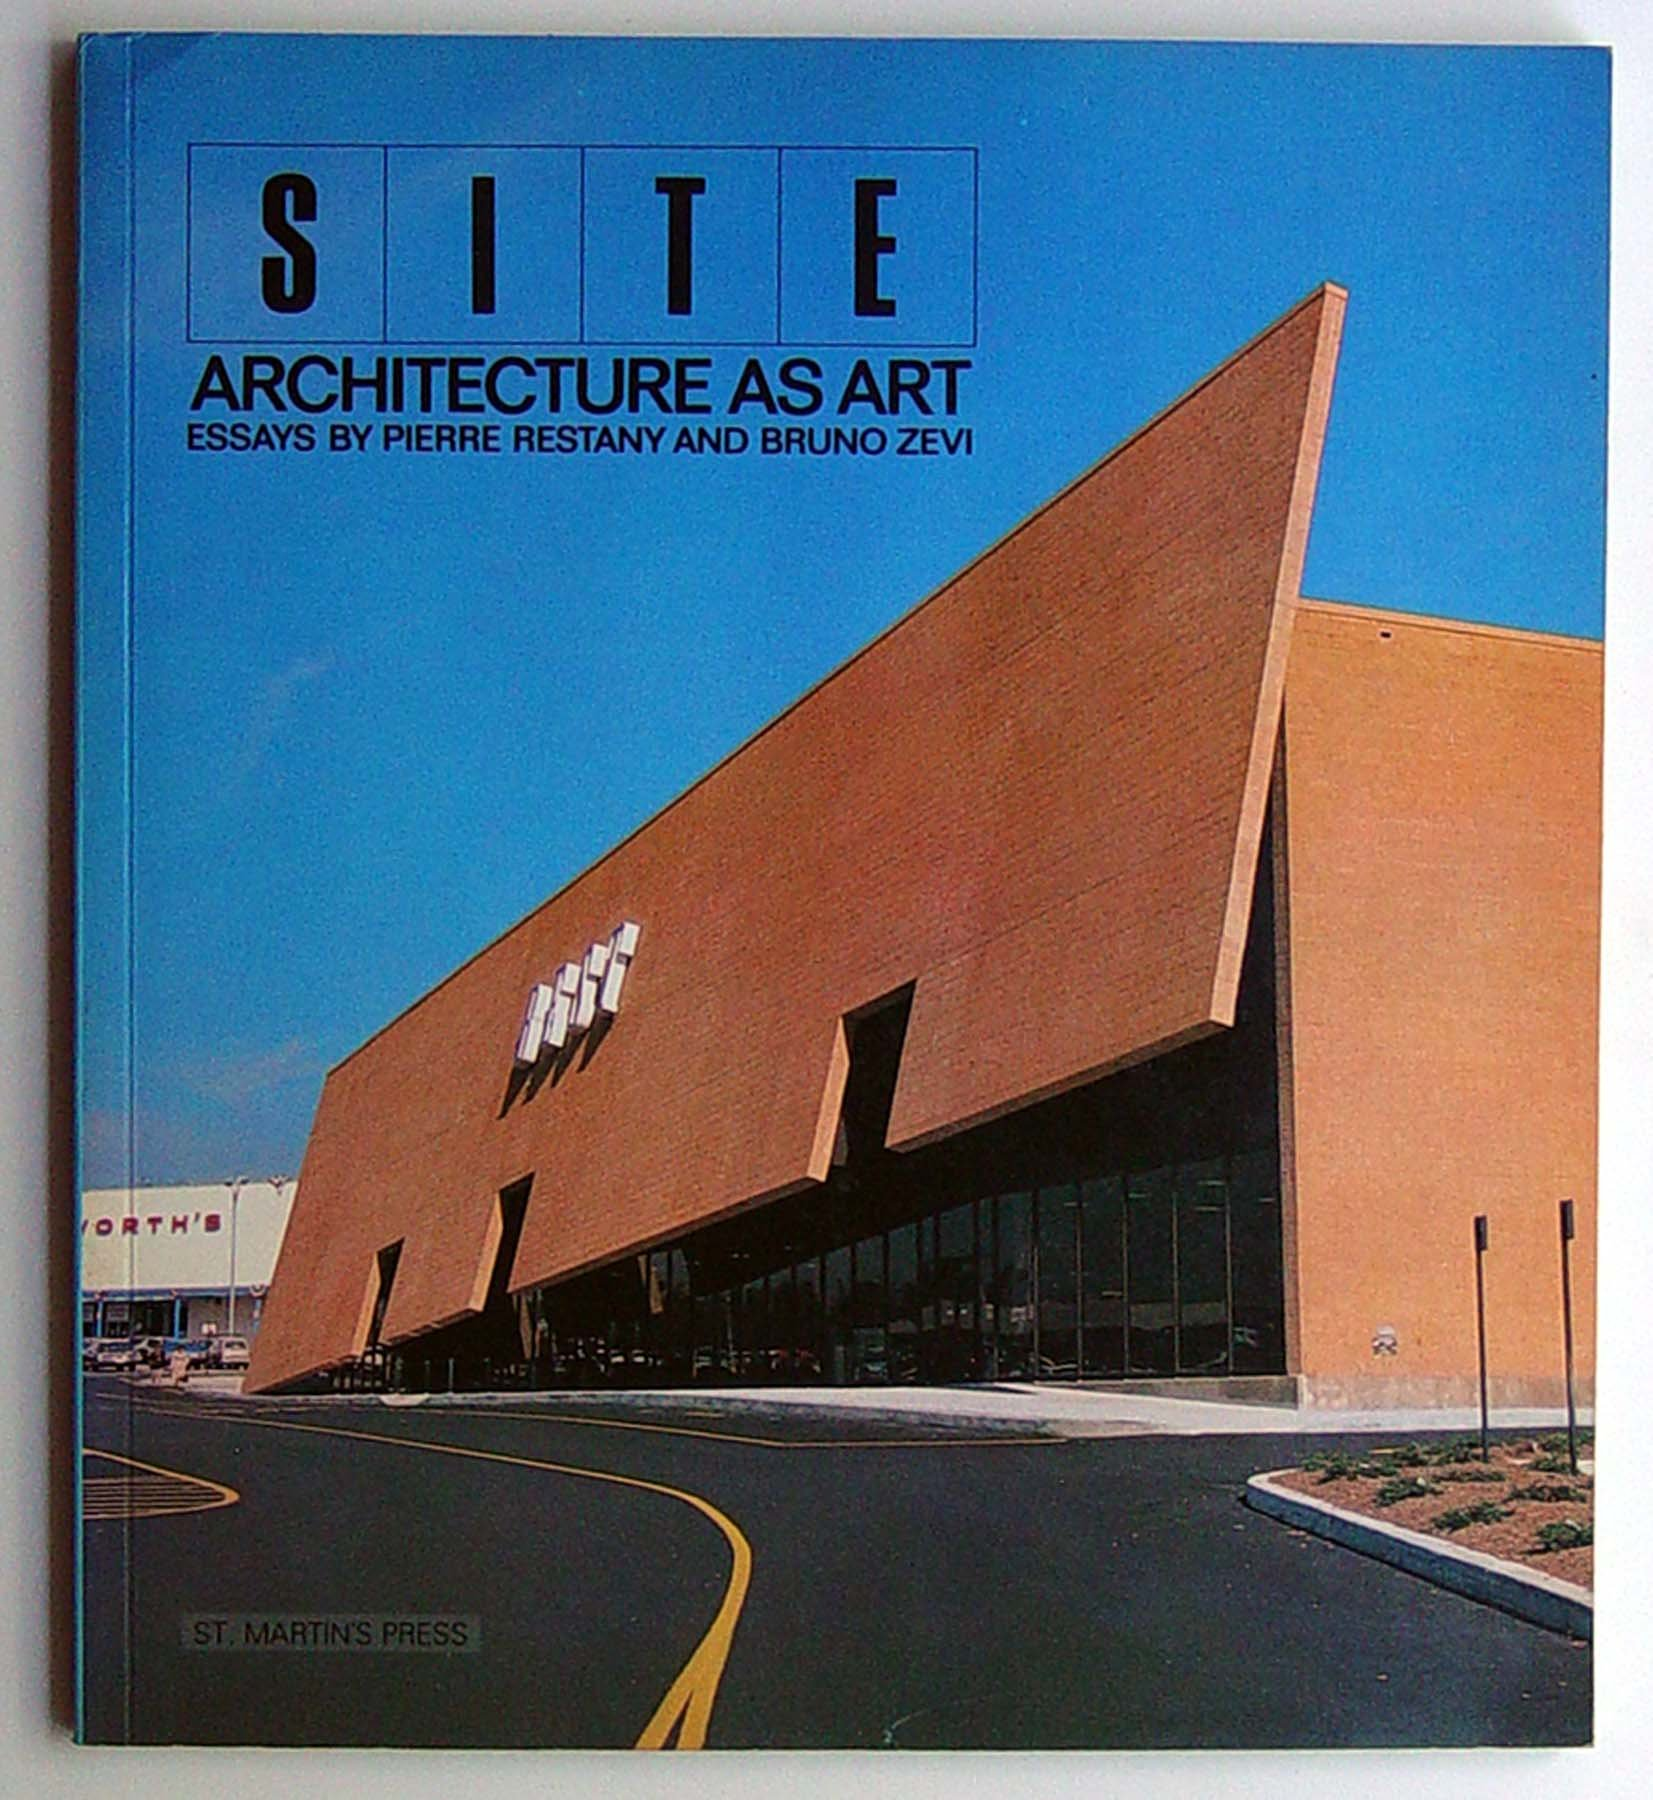 site architecture as art essays by pierre restany and bruno zevi site architecture as art essays by pierre restany and bruno zevi pierre restany bruno zevi site 9780312048143 com books